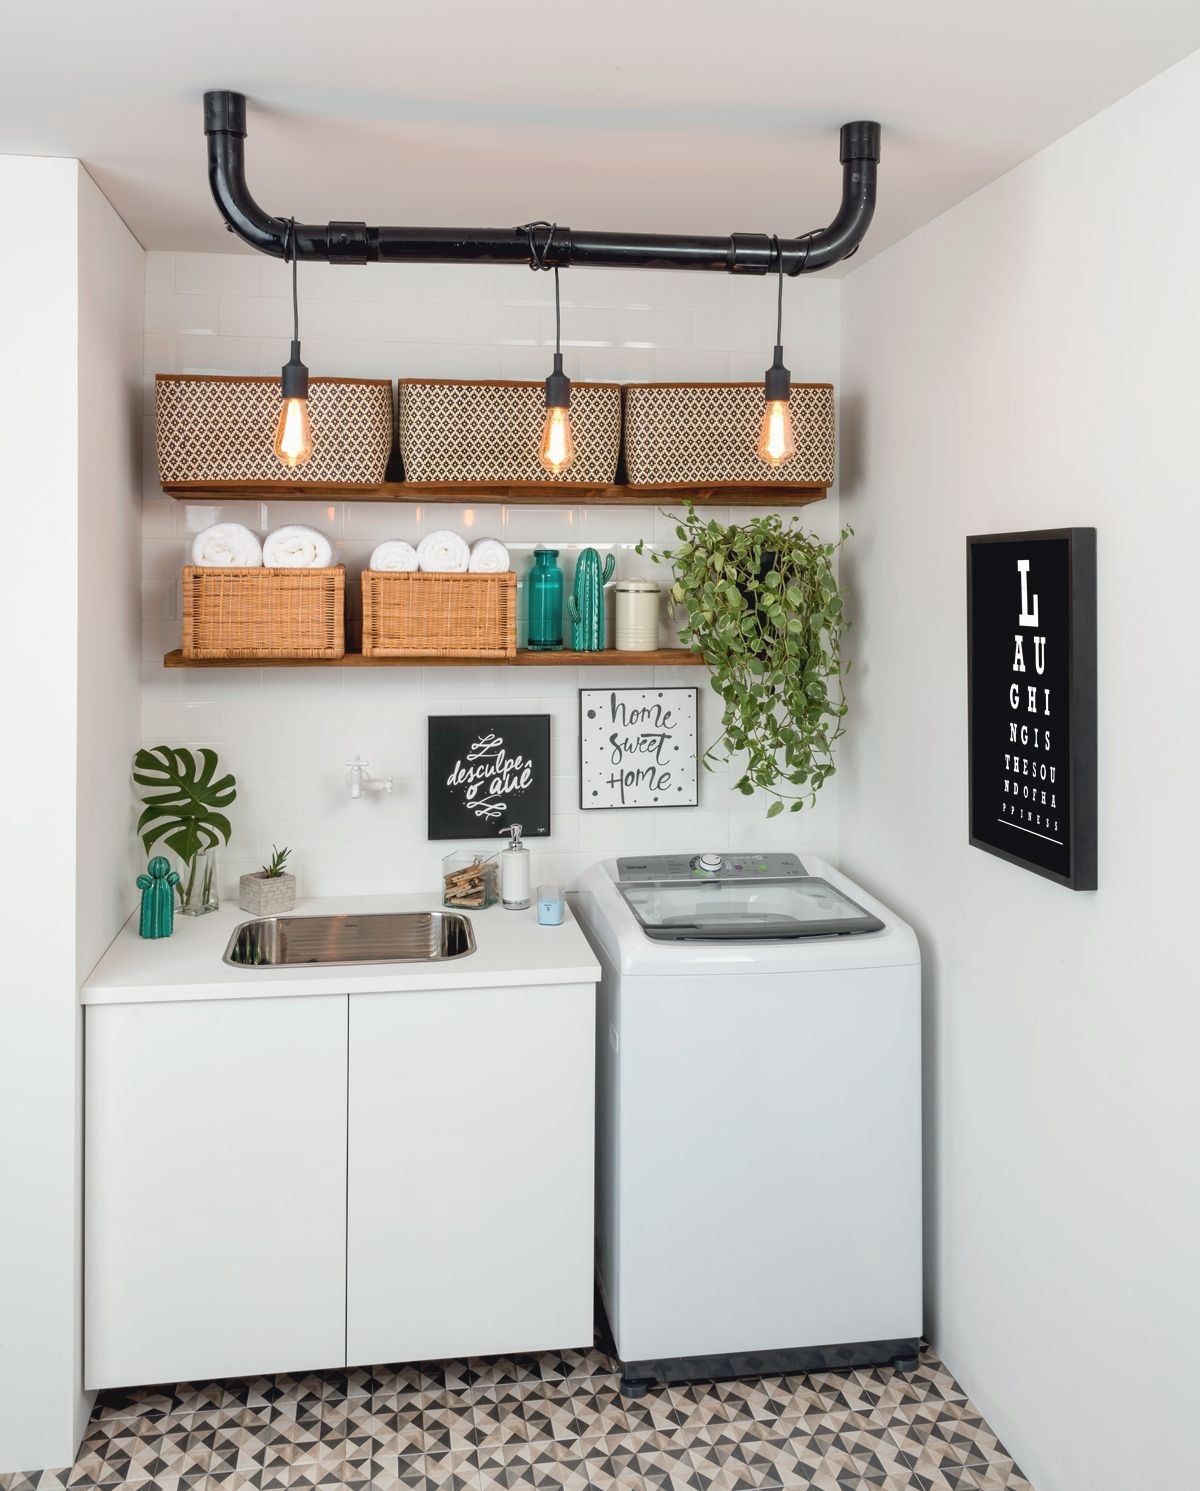 27 Best Laundry Room Shelf Ideas With Hanging Rod For Small Space Laundry Room Lighting Home Decor Laundry Room Design